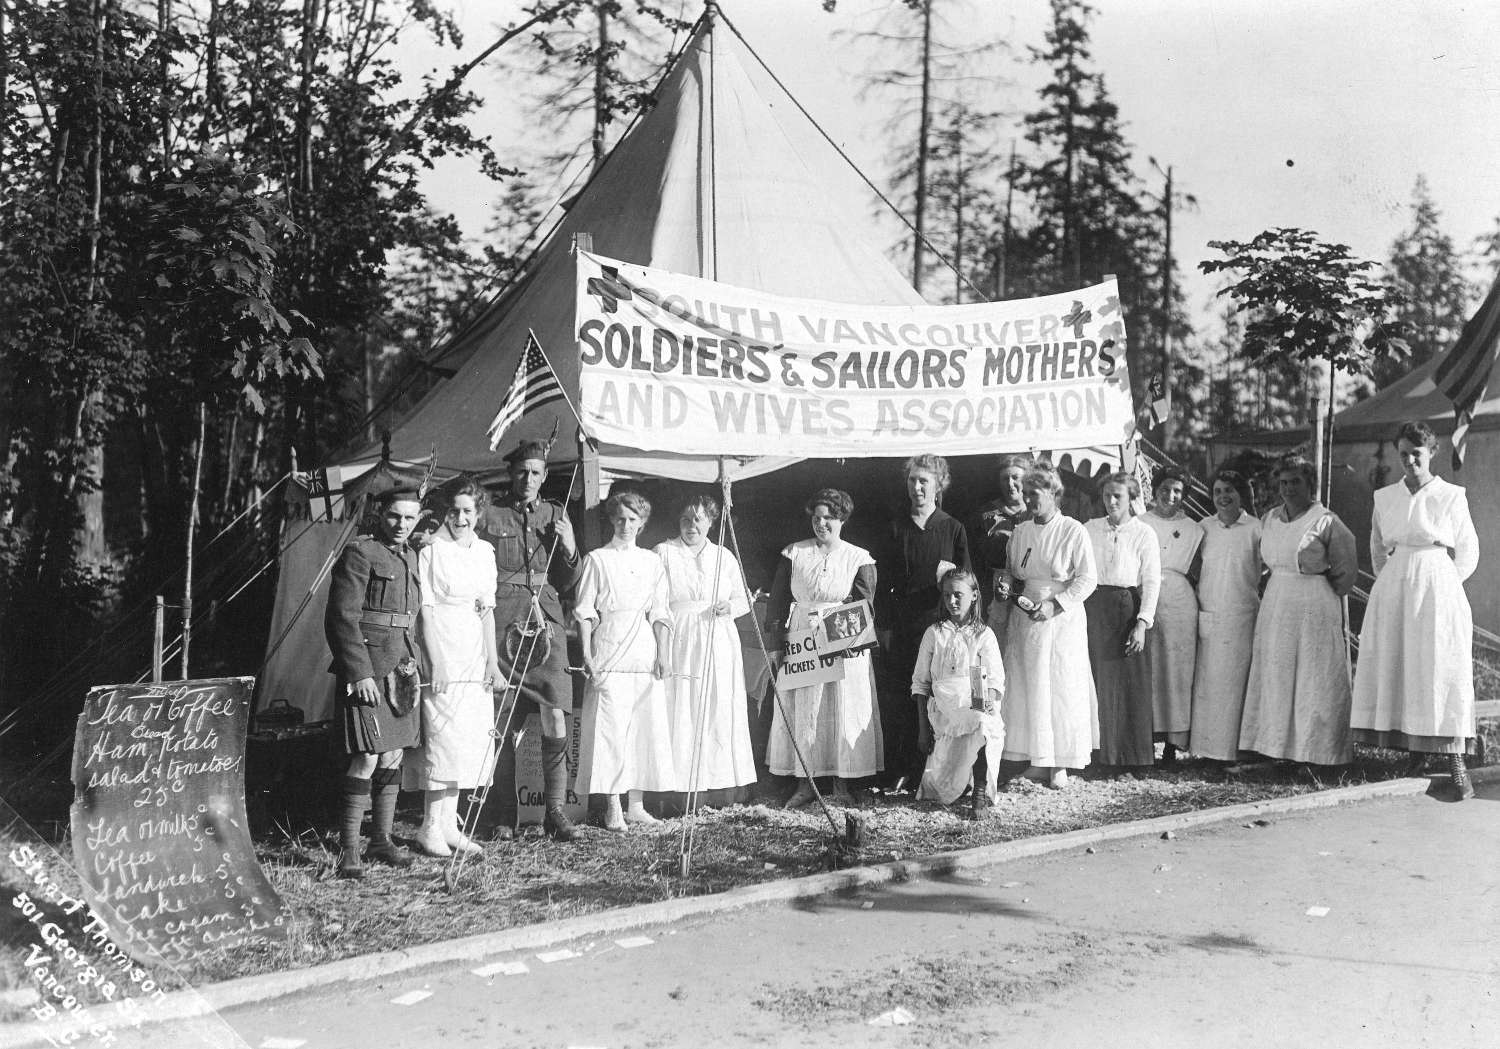 South Vancouver Soldiers and Sailors Mothers and Wives Association refreshment tent, 1917. Stuart Thomson, photographer. Reference code  AM54-S4-: Mil P36.